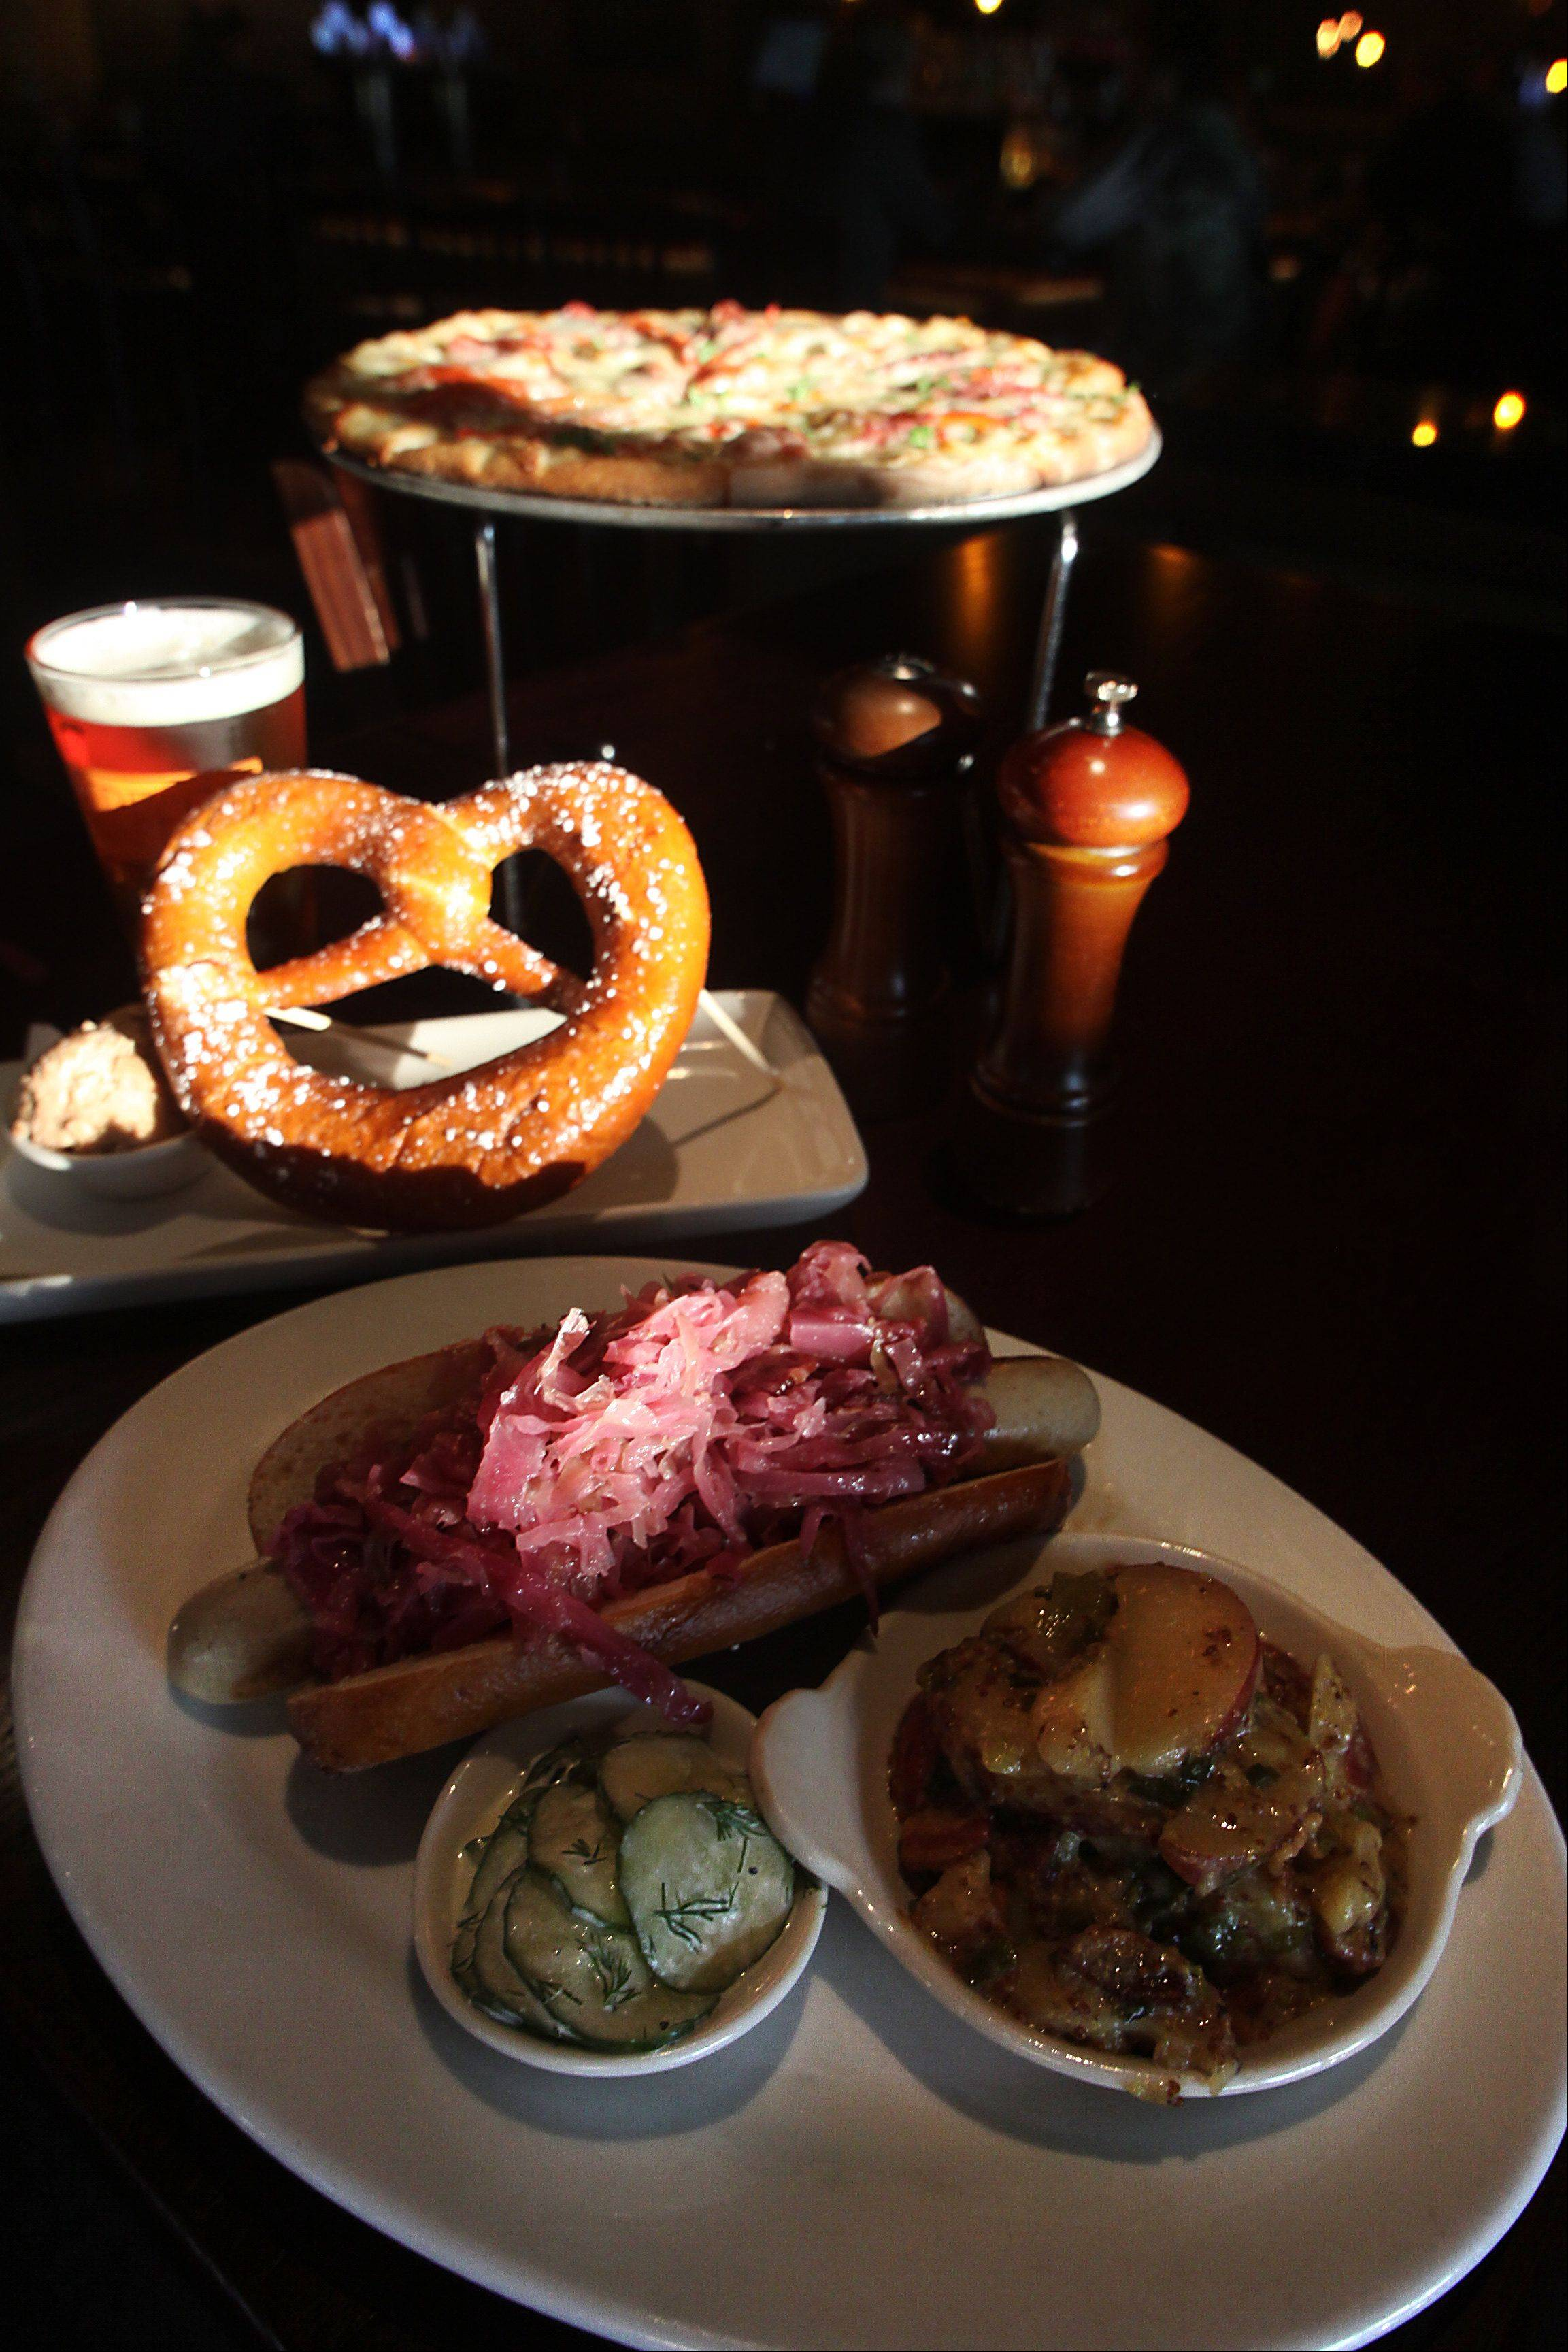 The Lucky Monk's Oktoberfest offerings include in-house brewed Oktoberfest lager, wurste, a sweet pretzel and German pizza.